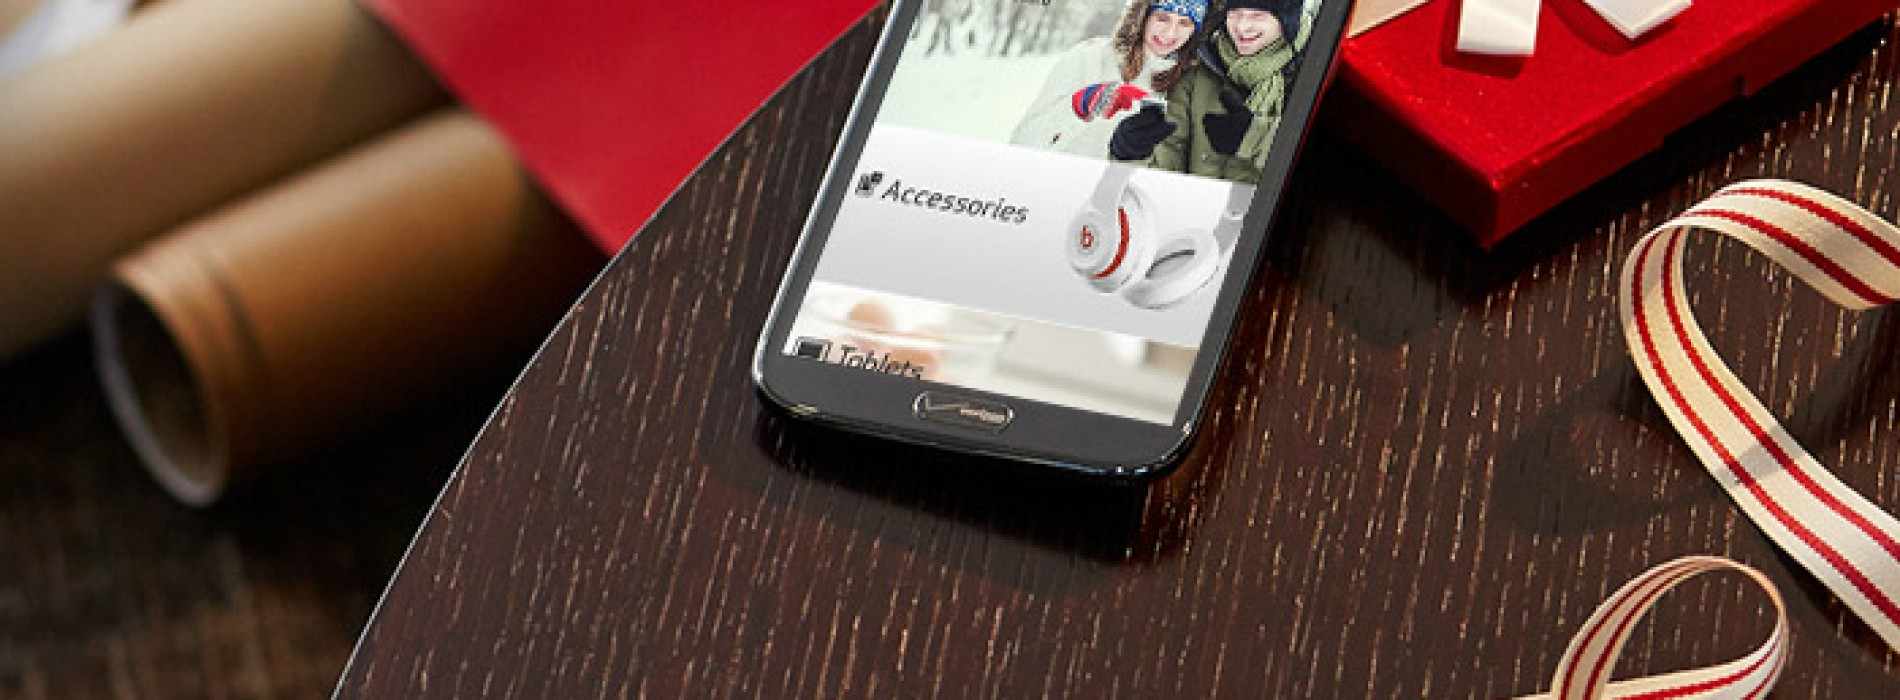 Verizon Cyber Monday deals include free phones from Samsung, LG, and Motorola